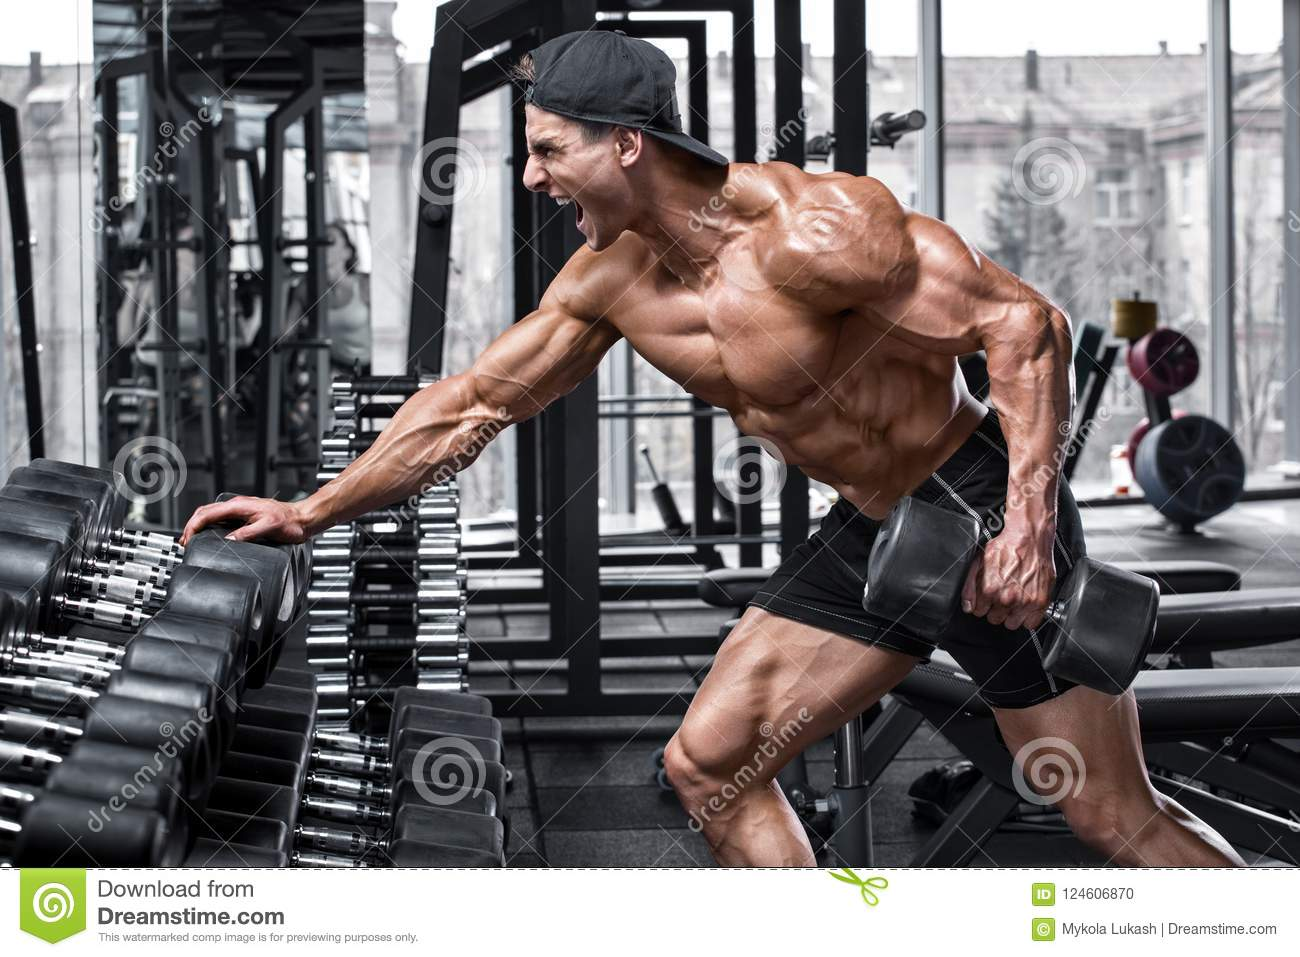 Muscular Man Working Out In Gym Doing Exercises For Back Single Arm Dumbbell Row Stock Photo Image Of Single Athletic 124606870